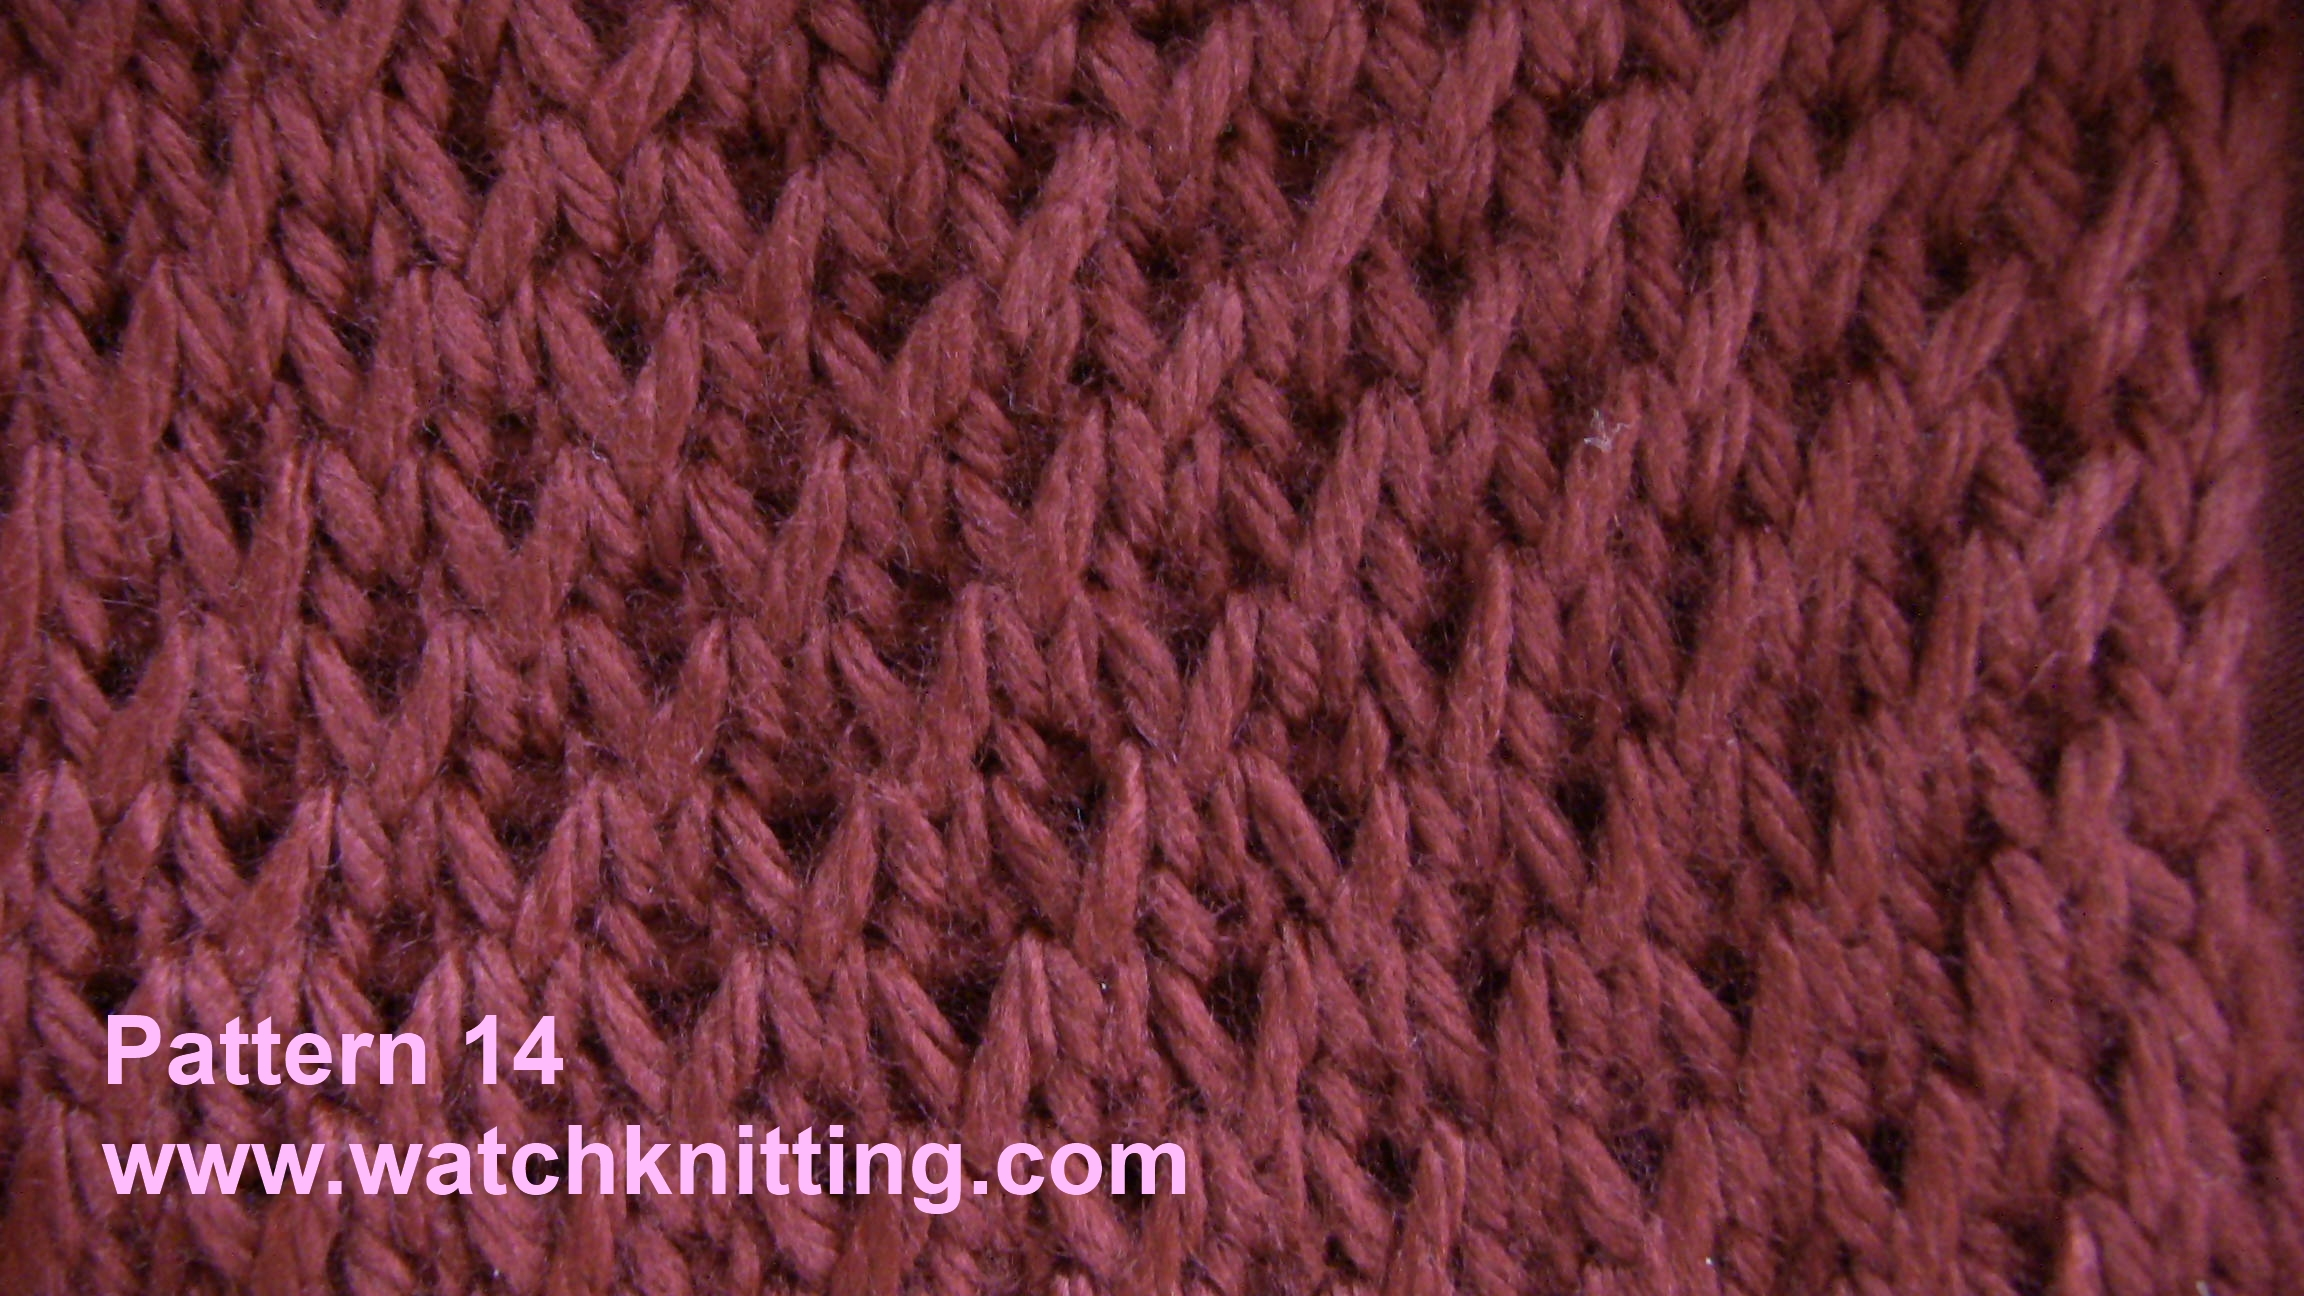 Easy Knitting Patterns : Pattern 14-Simple Knitting Patterns-www.watchknitting.com